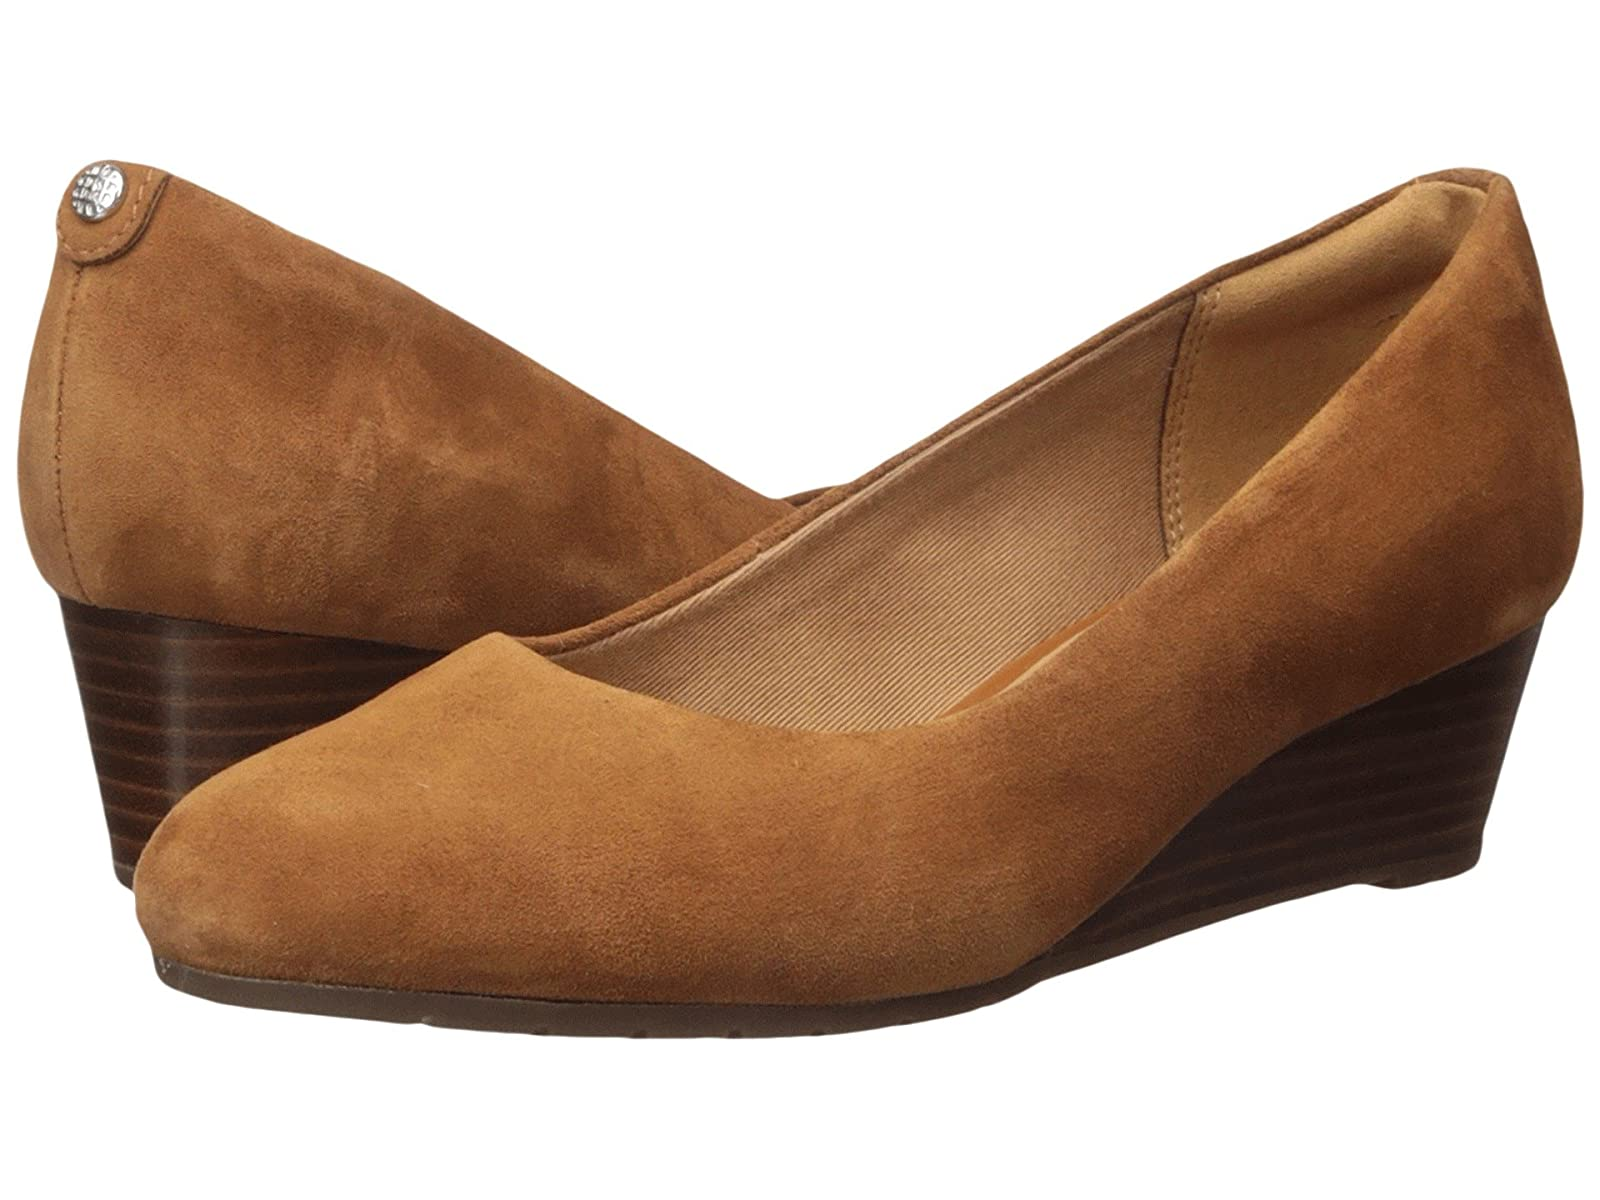 Clarks Vendra BloomCheap and distinctive eye-catching shoes